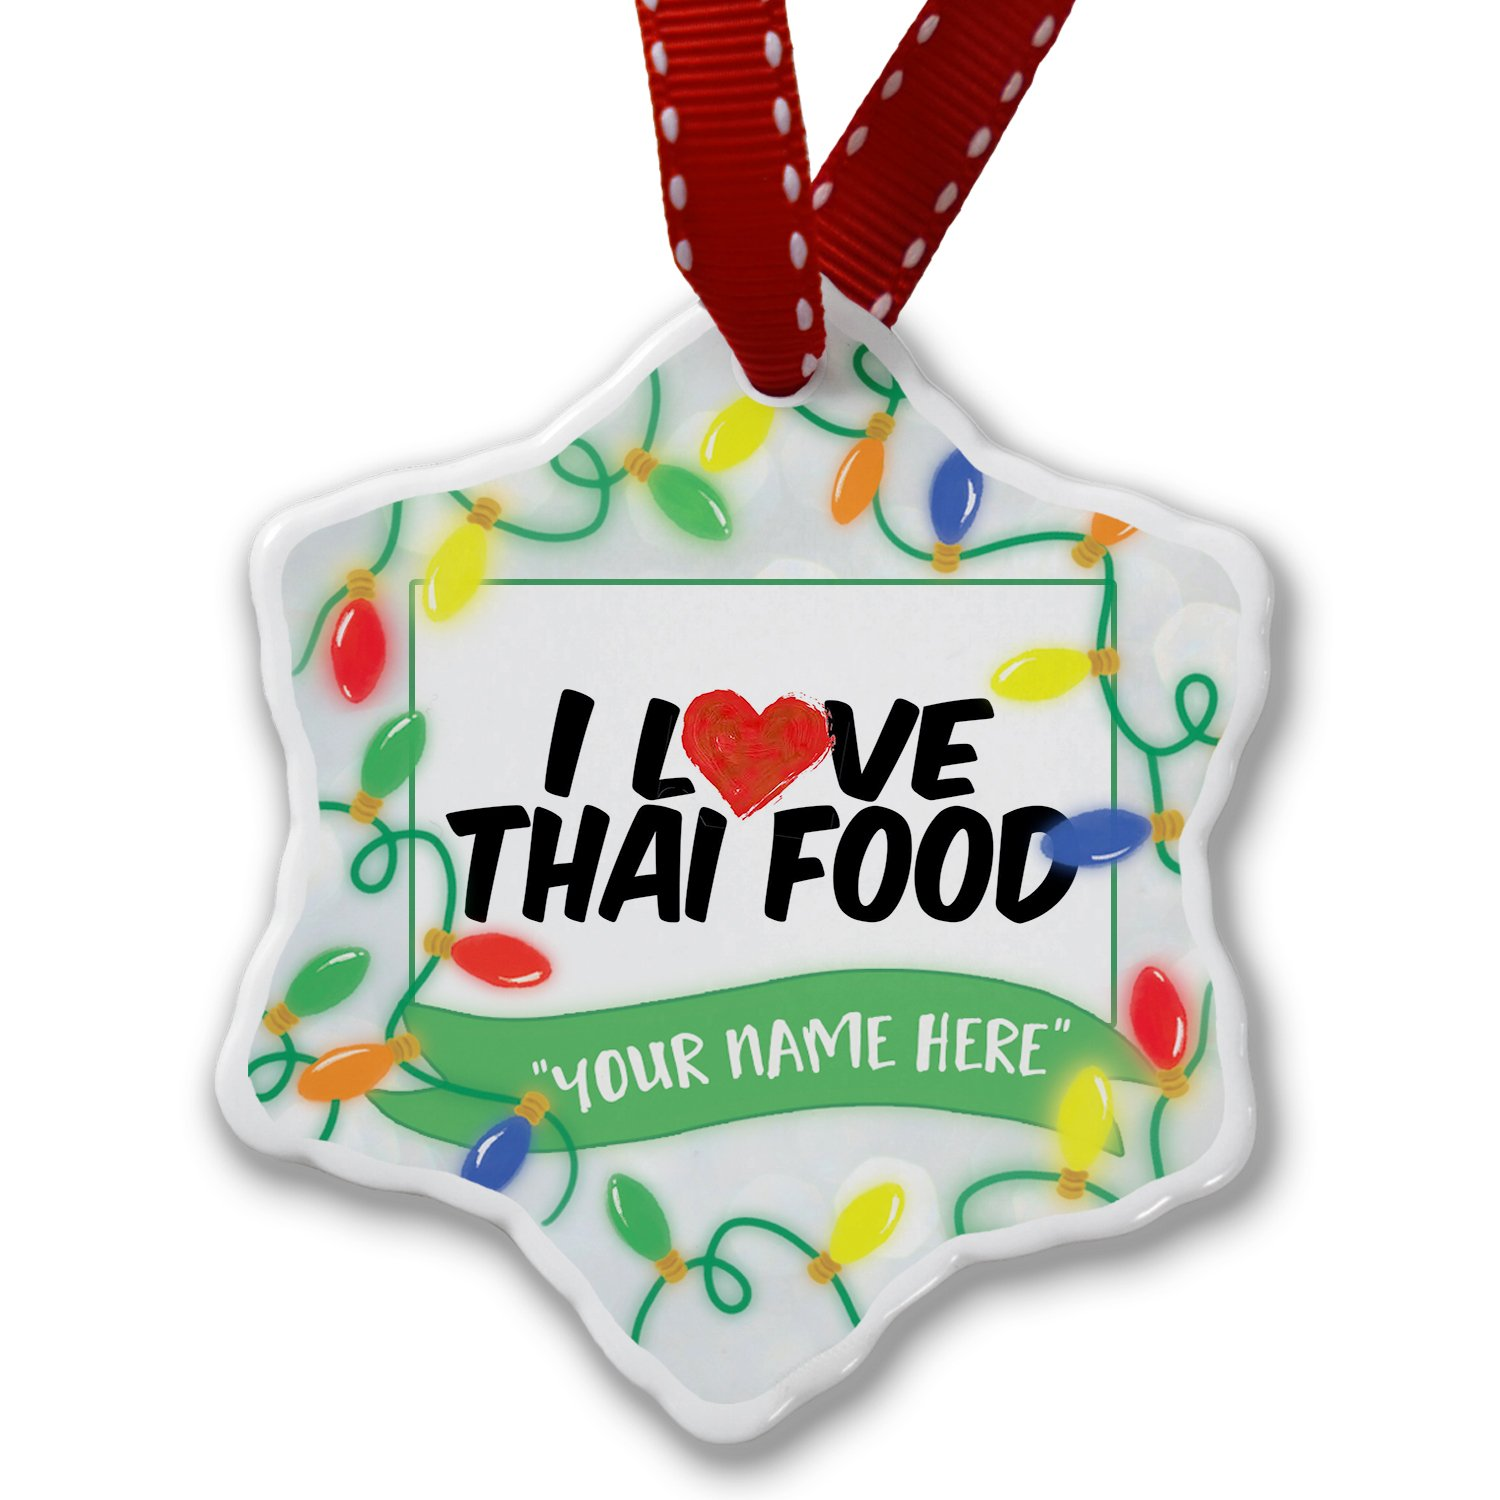 Personalized Name Christmas Ornament, I Love Thai Food NEONBLOND